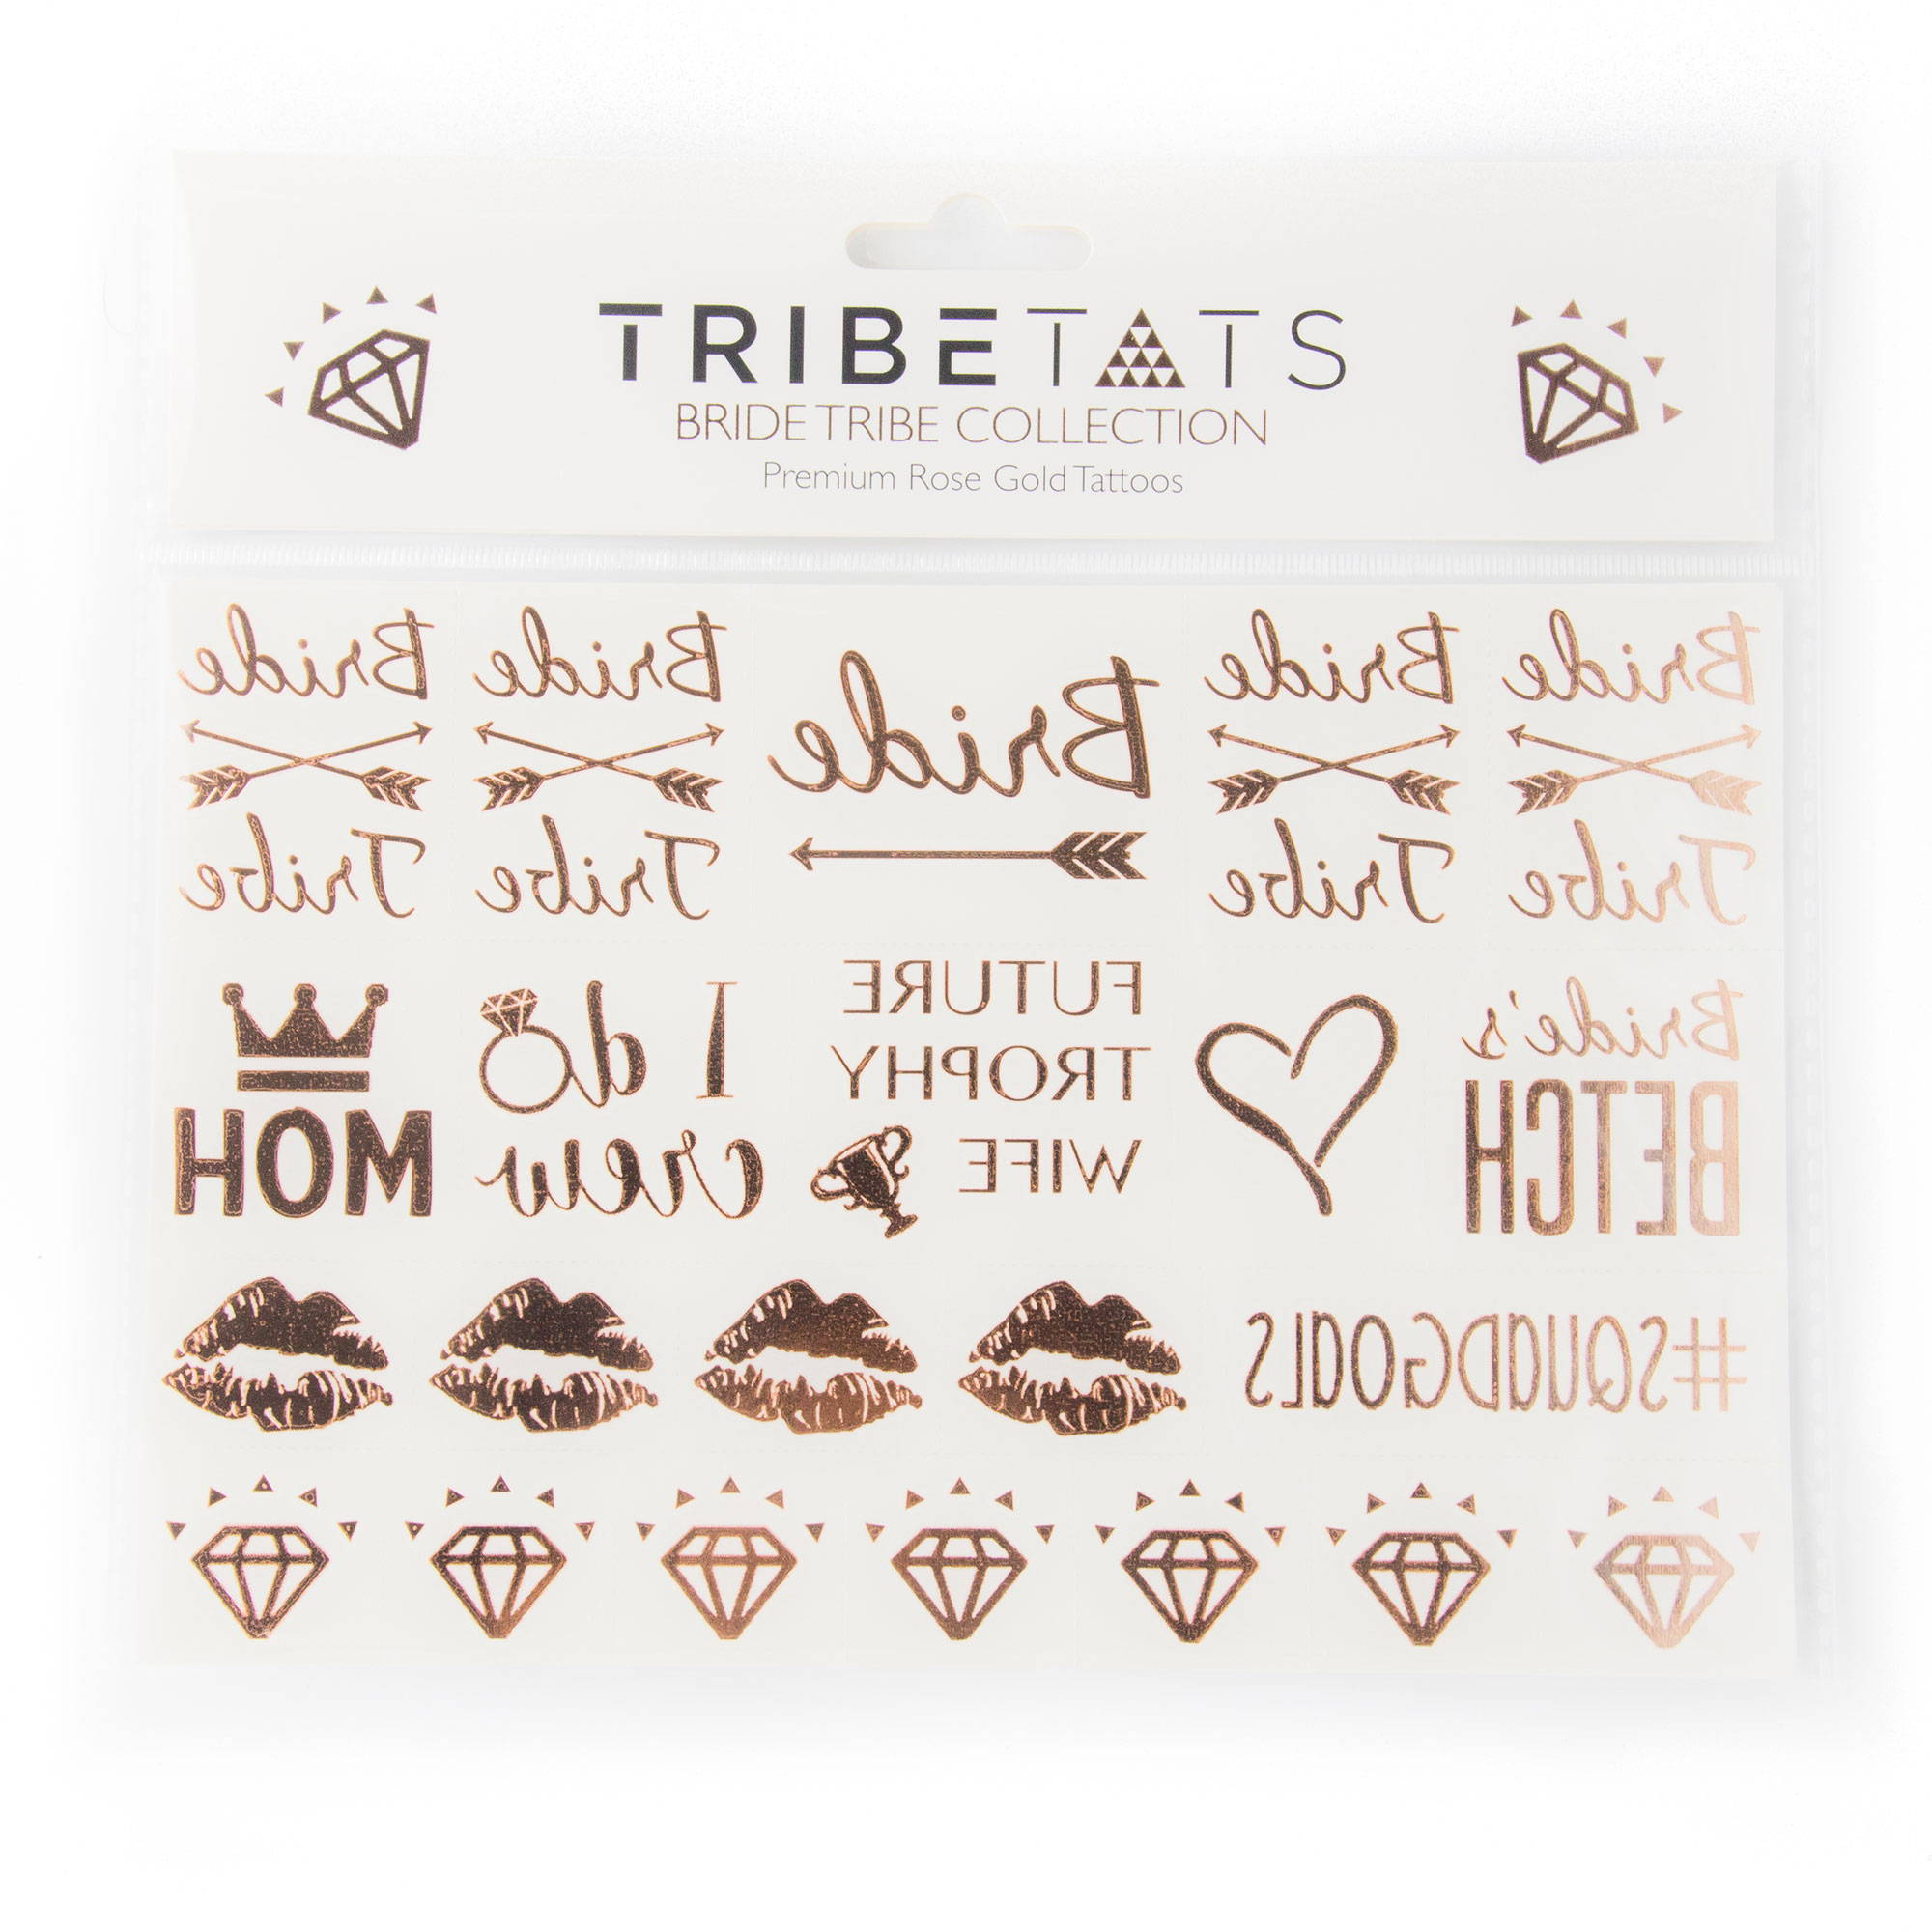 acc82c5f7 Bachelorette Party Temporary Metallic Tattoos | Bride Tribe Rose Gold –  TribeTats